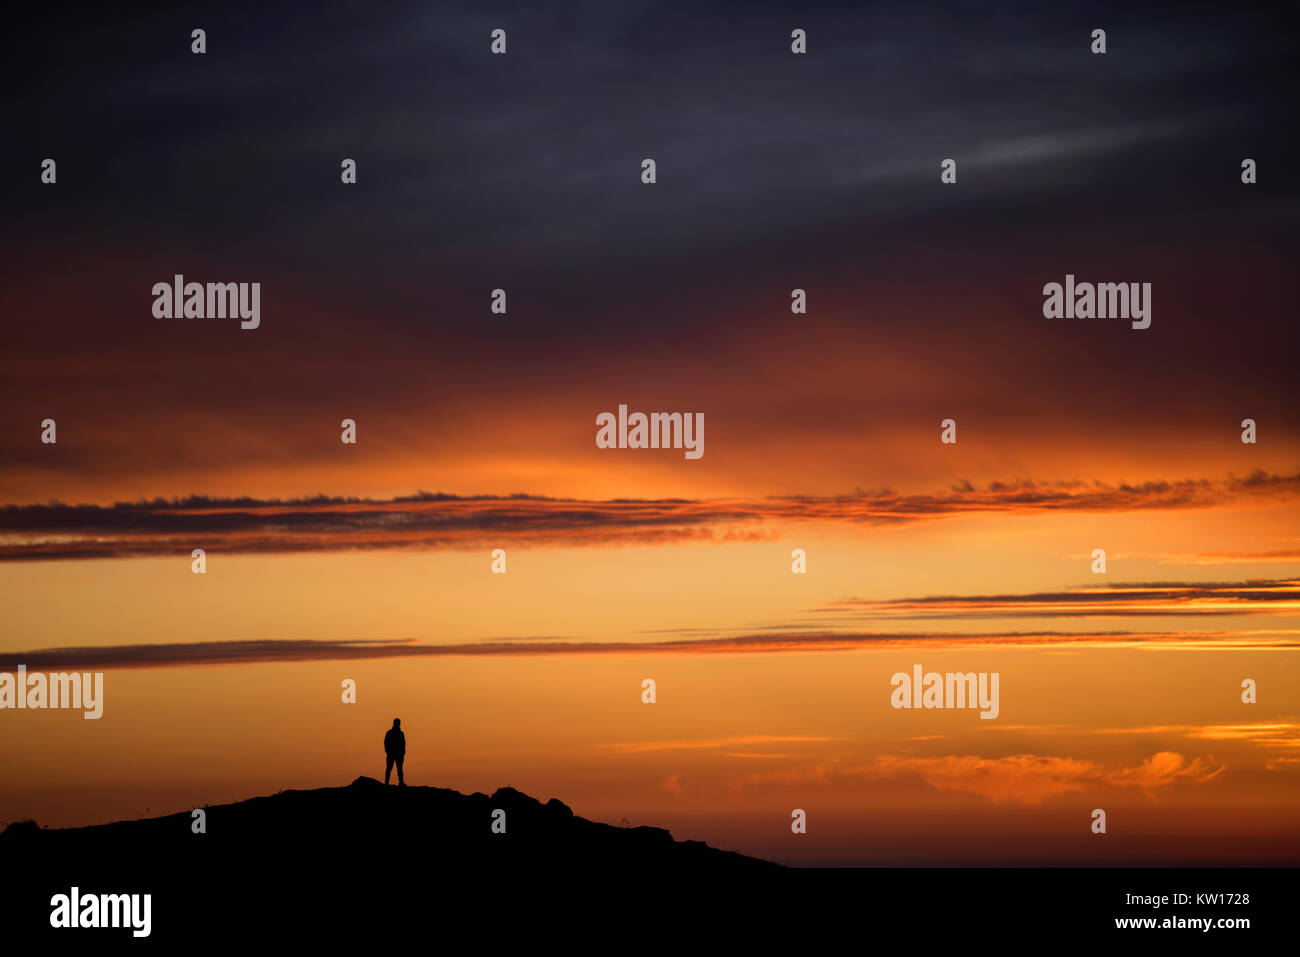 dawn diaries - Stock Image